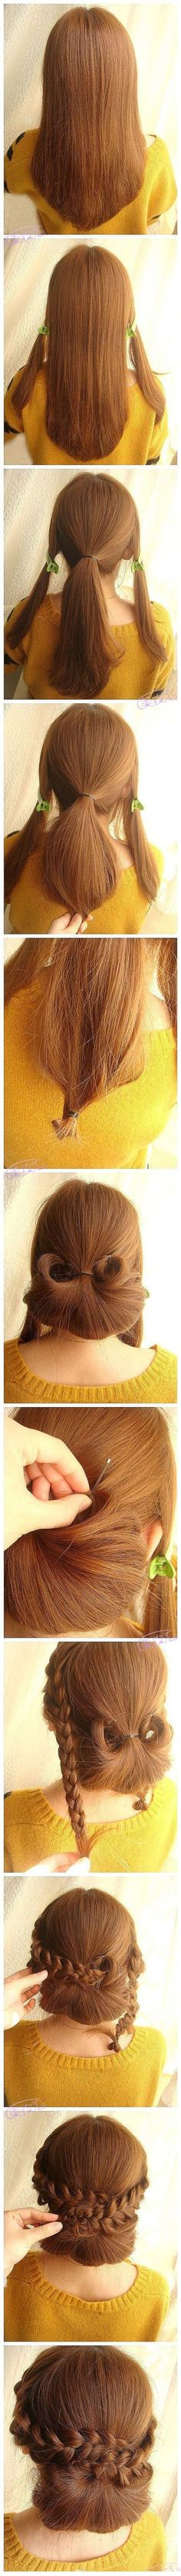 Elegant and Easy Hairstyle-Picture Tutorial